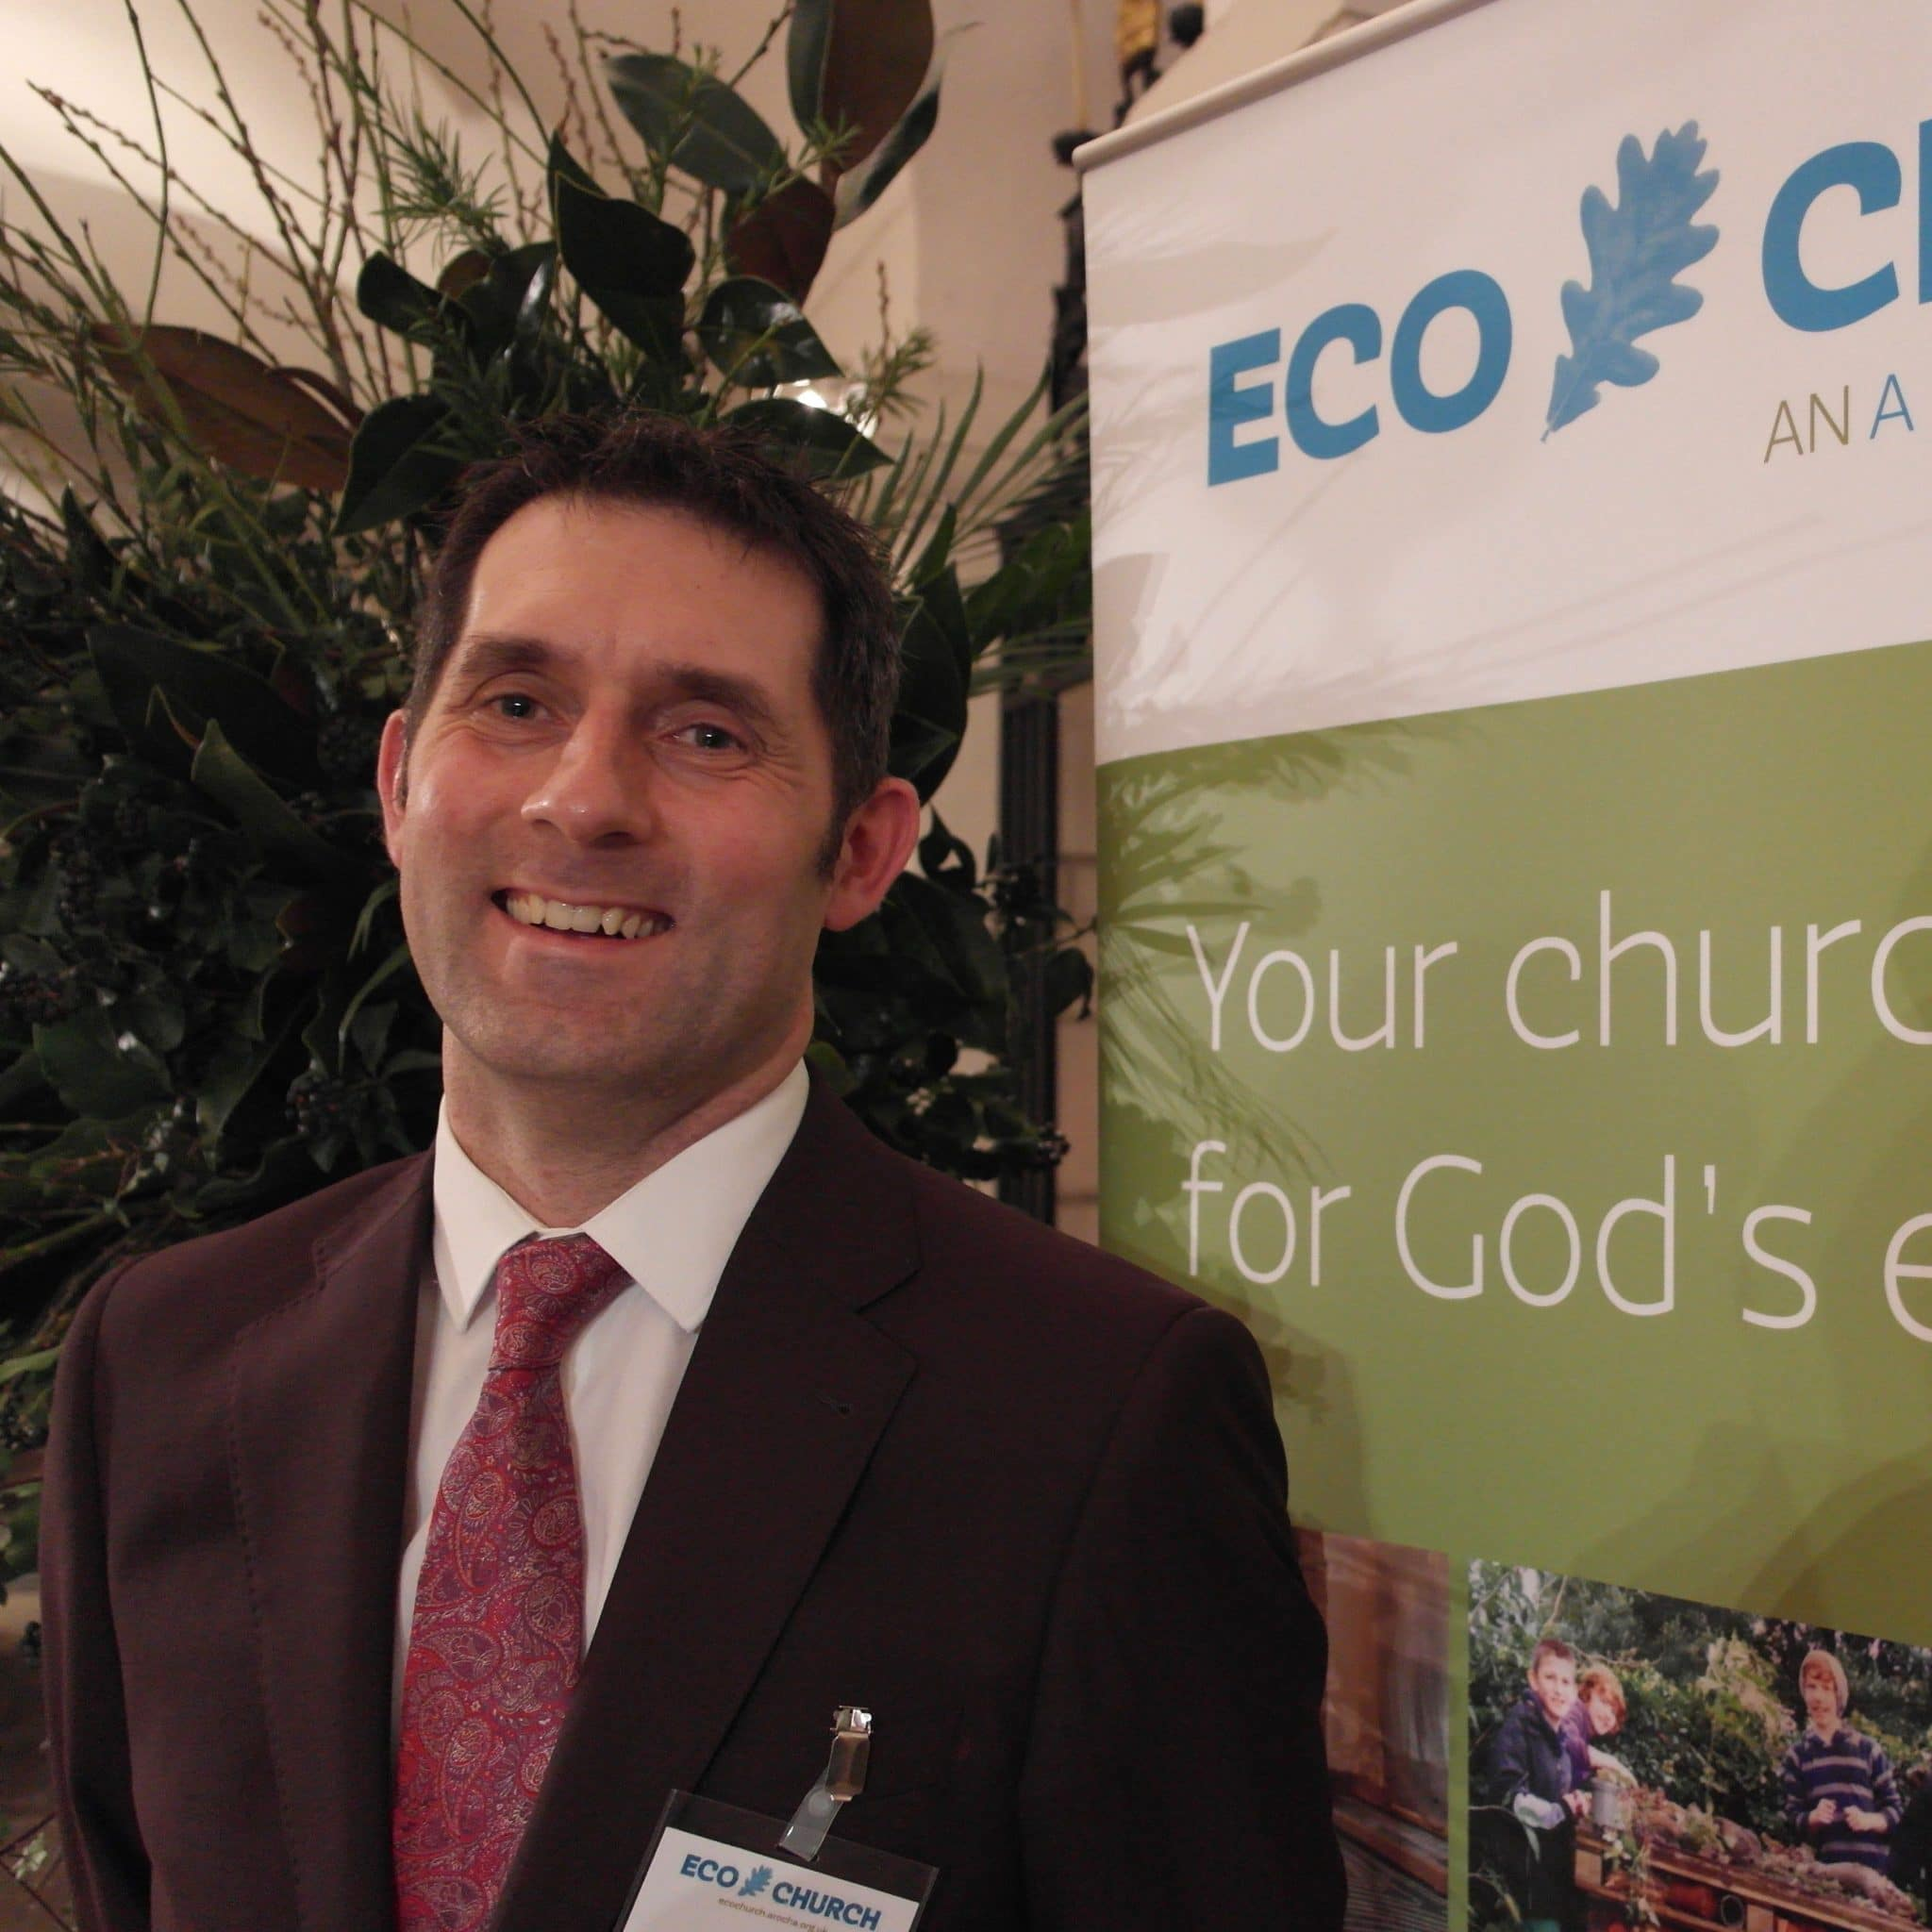 Nigel Hopper of A Rocha UK, advertising Eco-Church